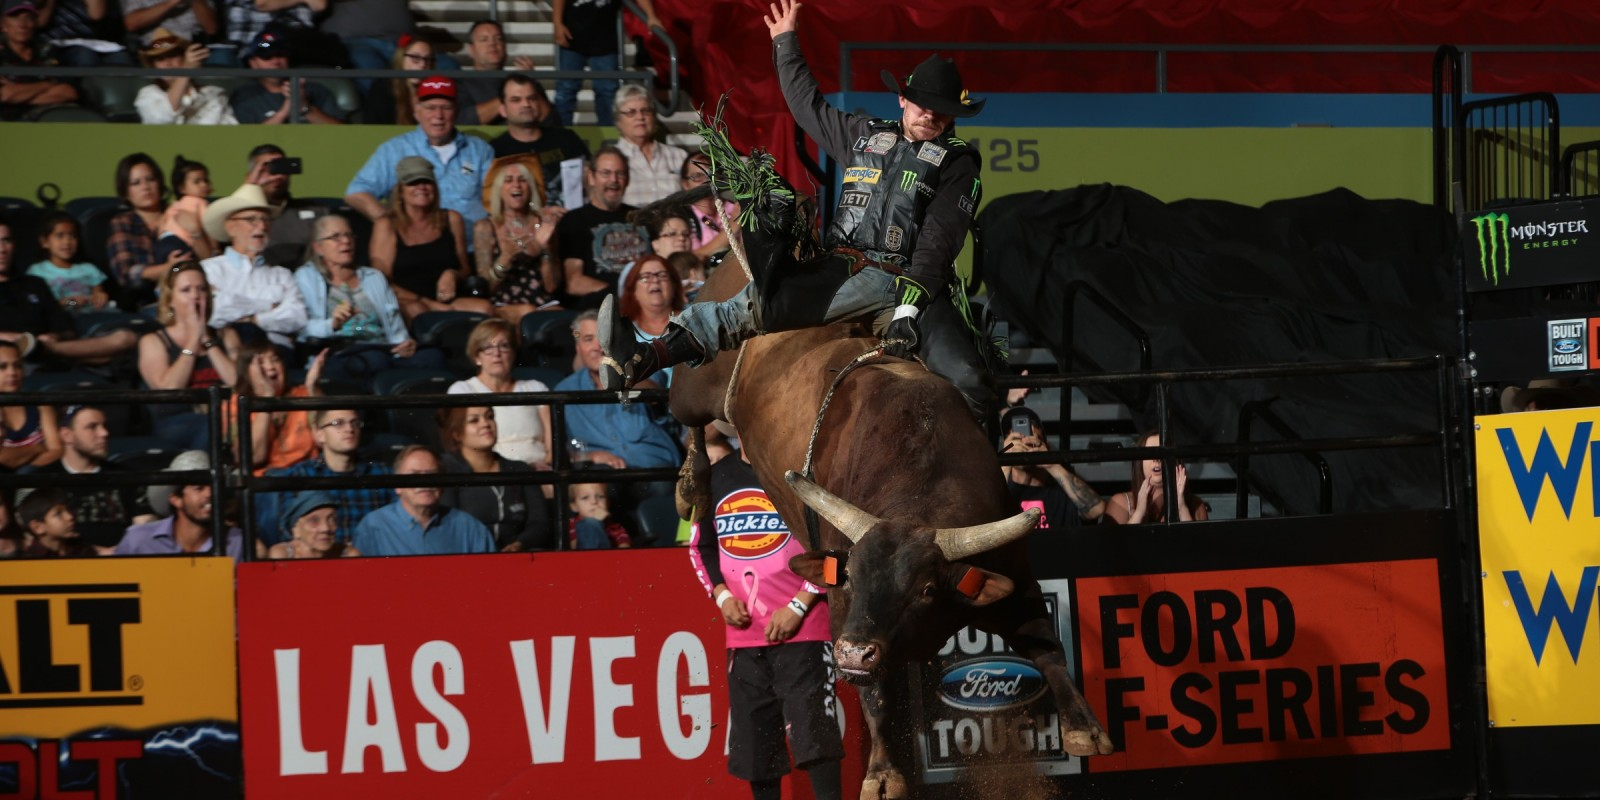 Chase Outlaw rides Dakota Rodeo/Chad Berger/Clay Struve's Chantilly Lace for 89.25 during the championship round of the Tucson Built Ford Tough series PBR